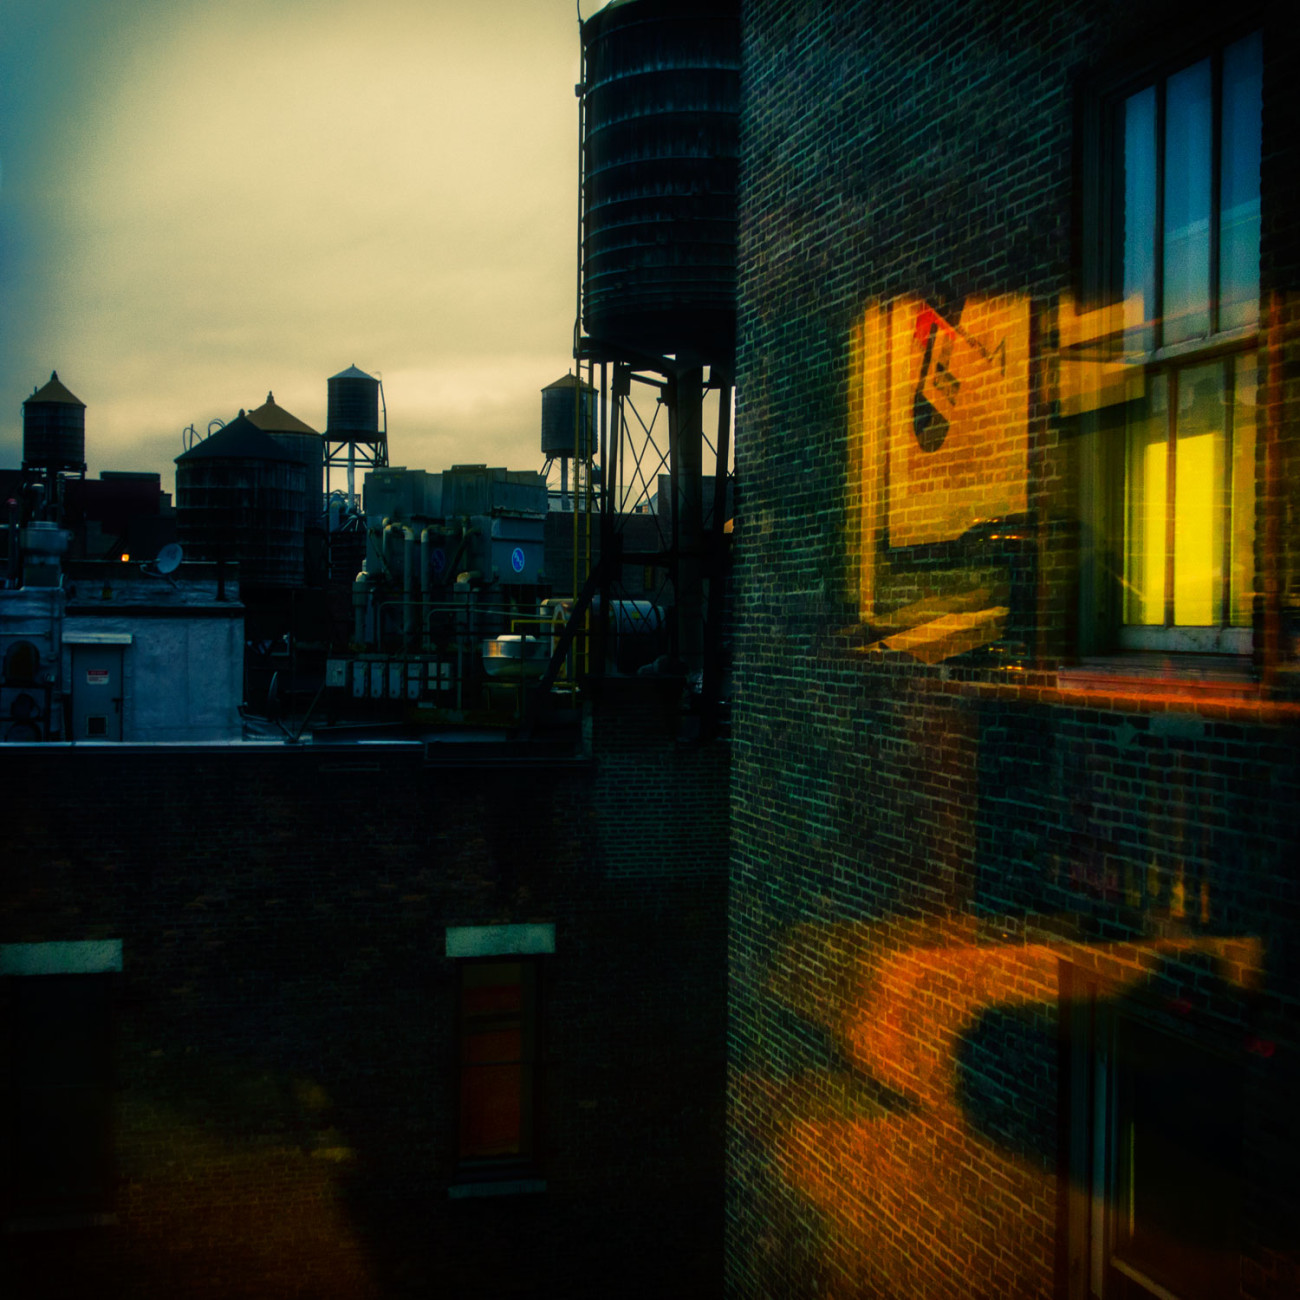 Rooftop water towers at sunset, New York, 2014